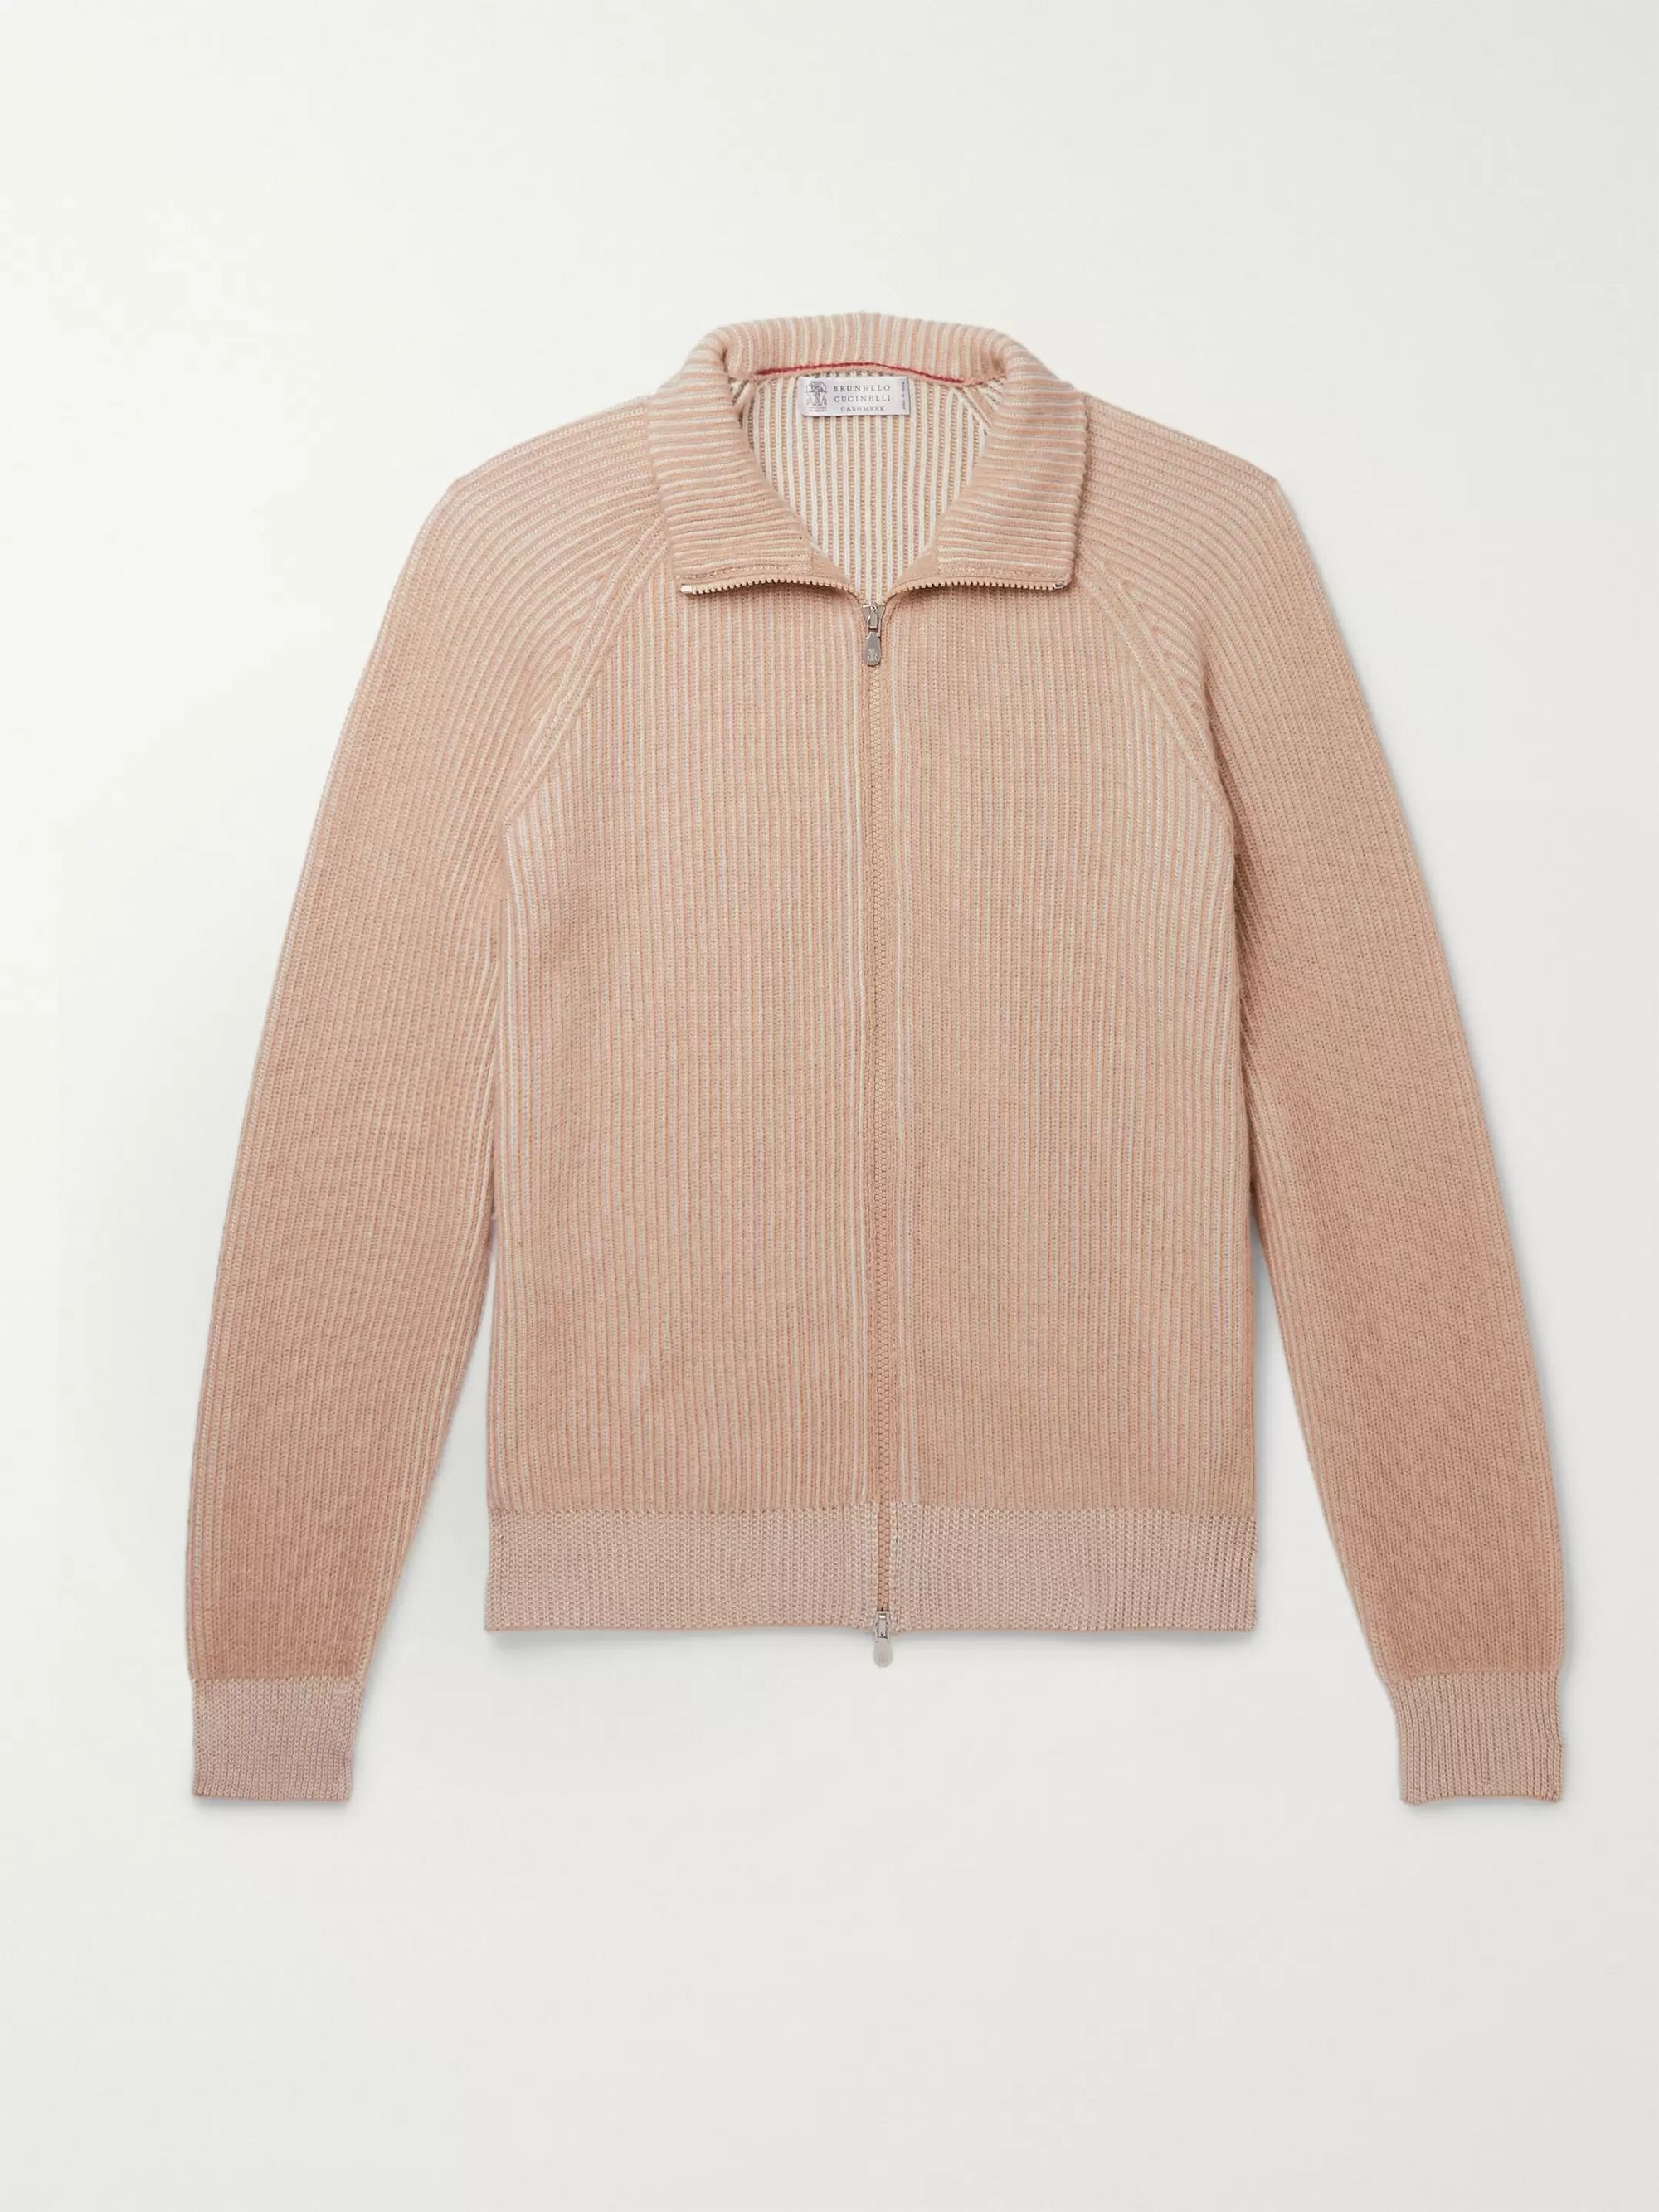 Brunello Cucinelli Ribbed Mélange Cashmere Zip-Up Sweater